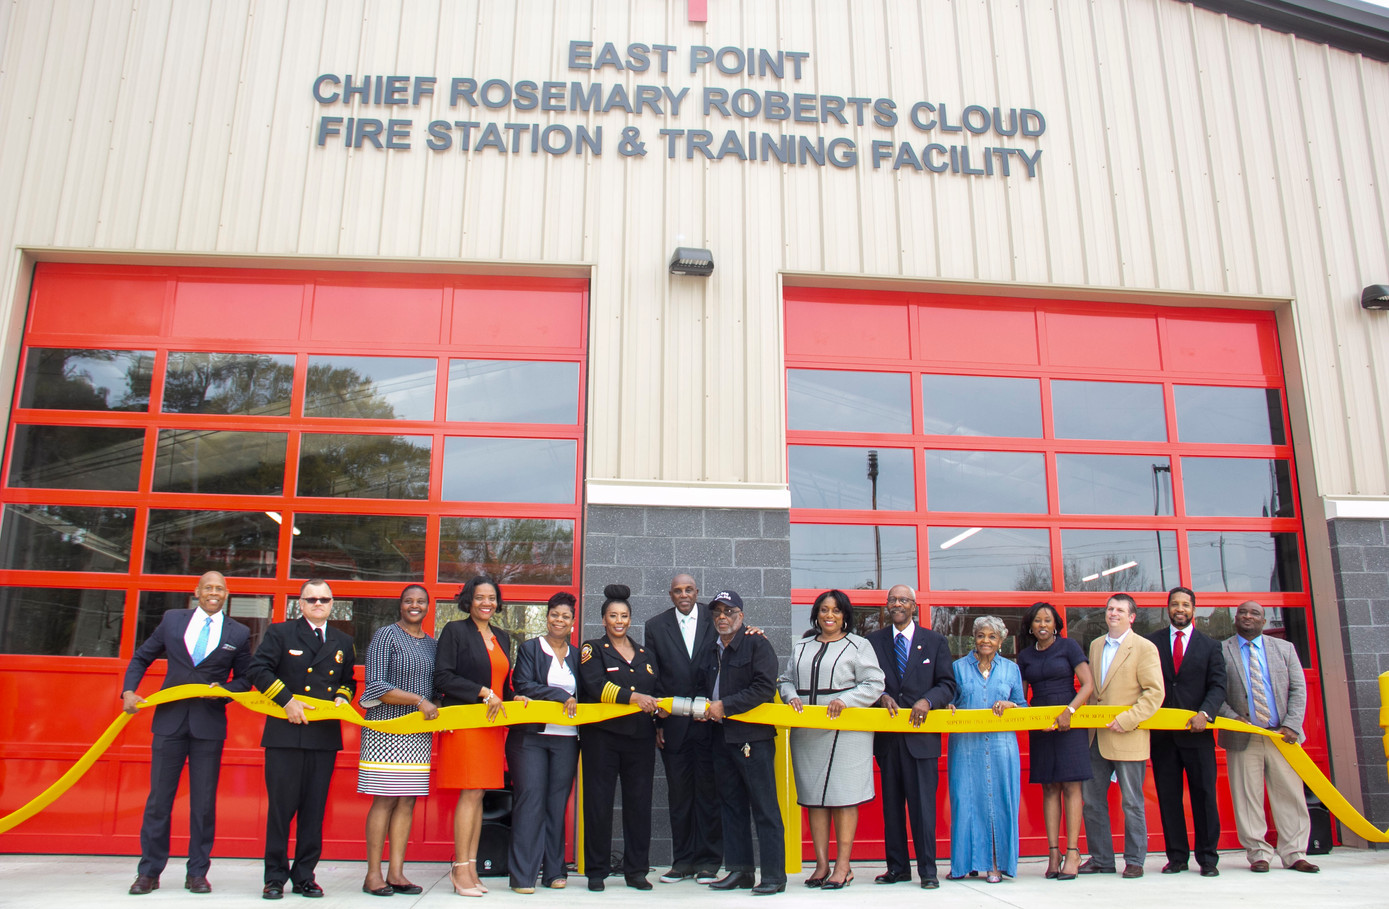 Rosemary Roberts Cloud Fire Station & Training Facility